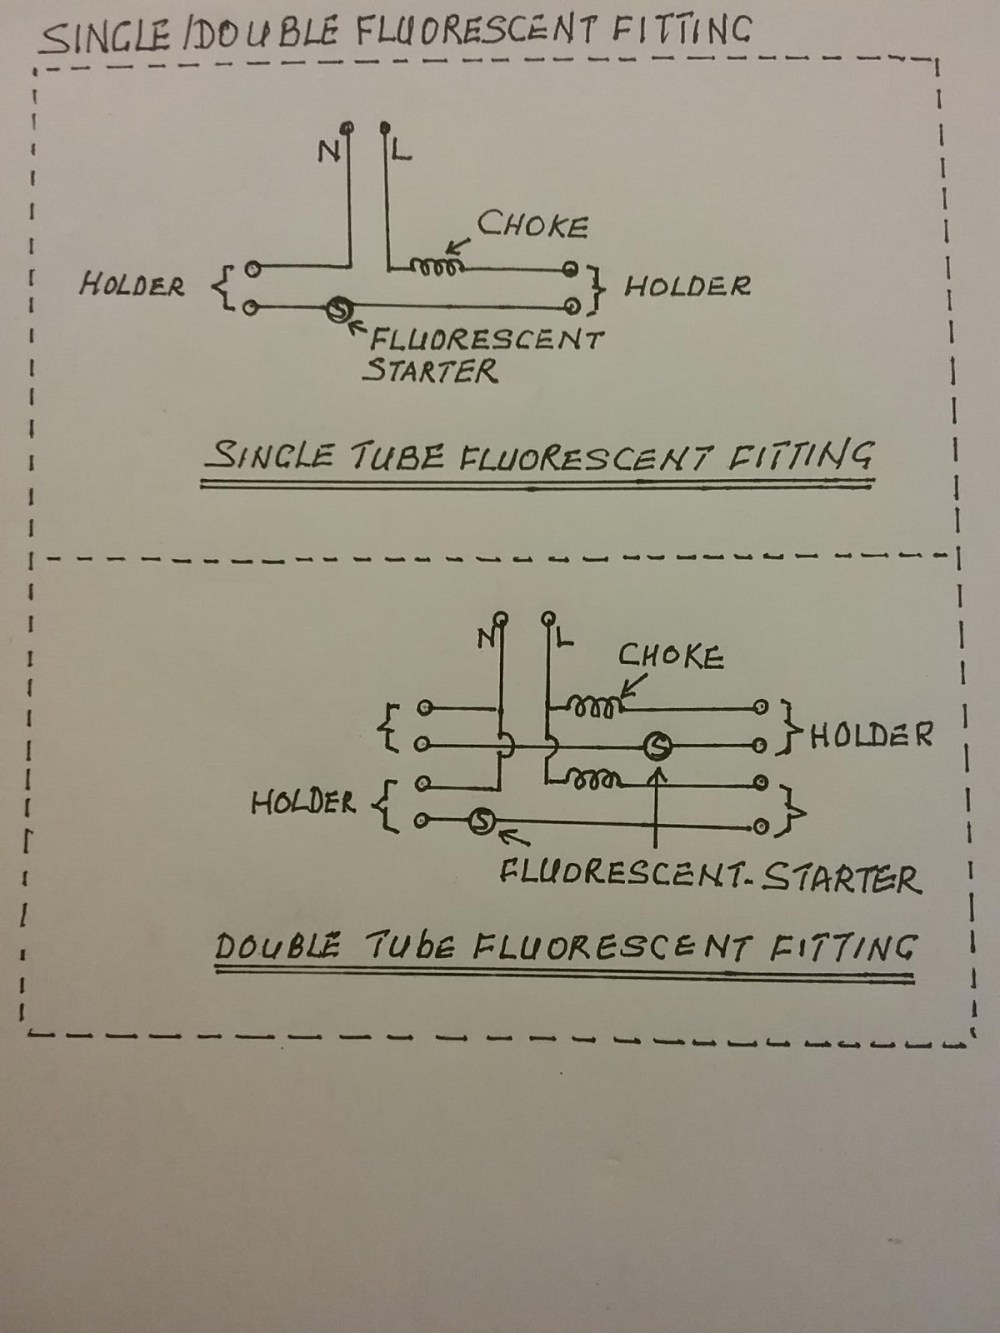 medium resolution of this is the single line diagram for c set with choke and fluorescent starter for fluorescent fitting